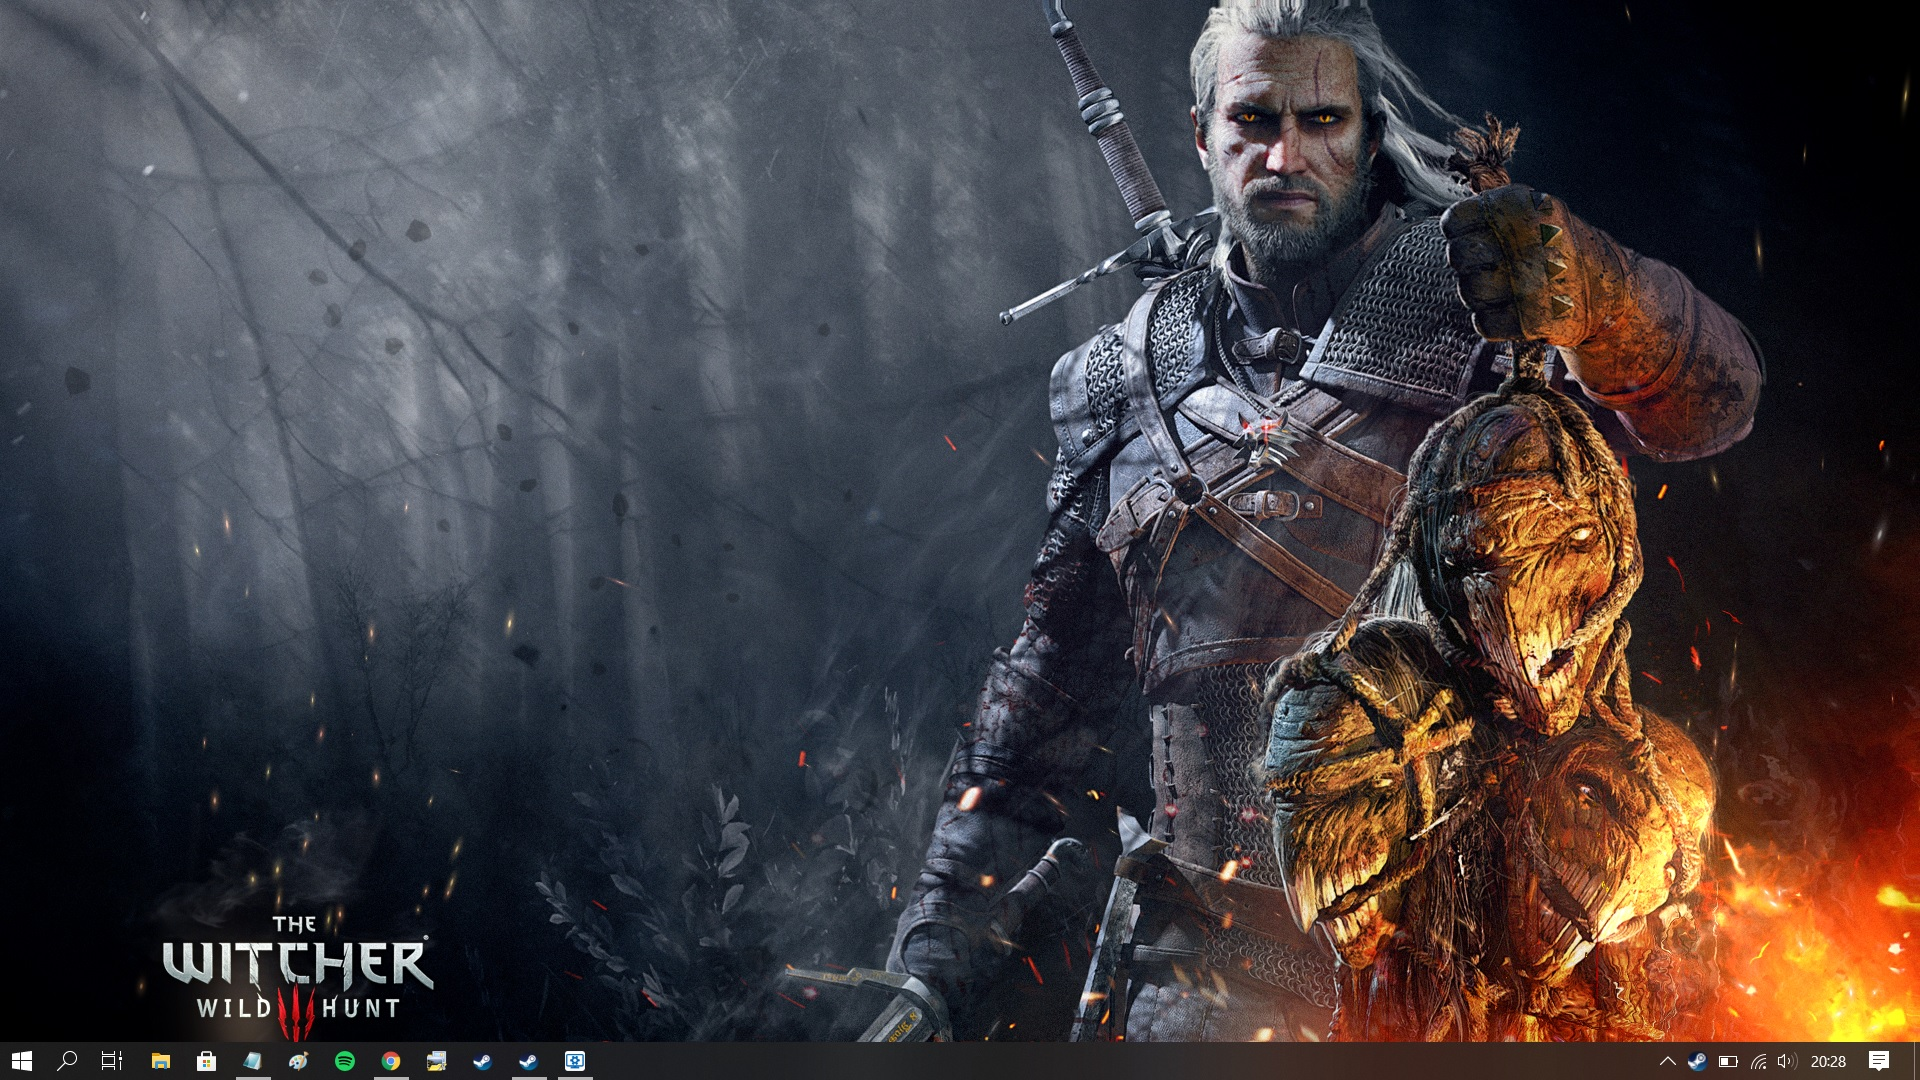 the witcher wallpaper hd